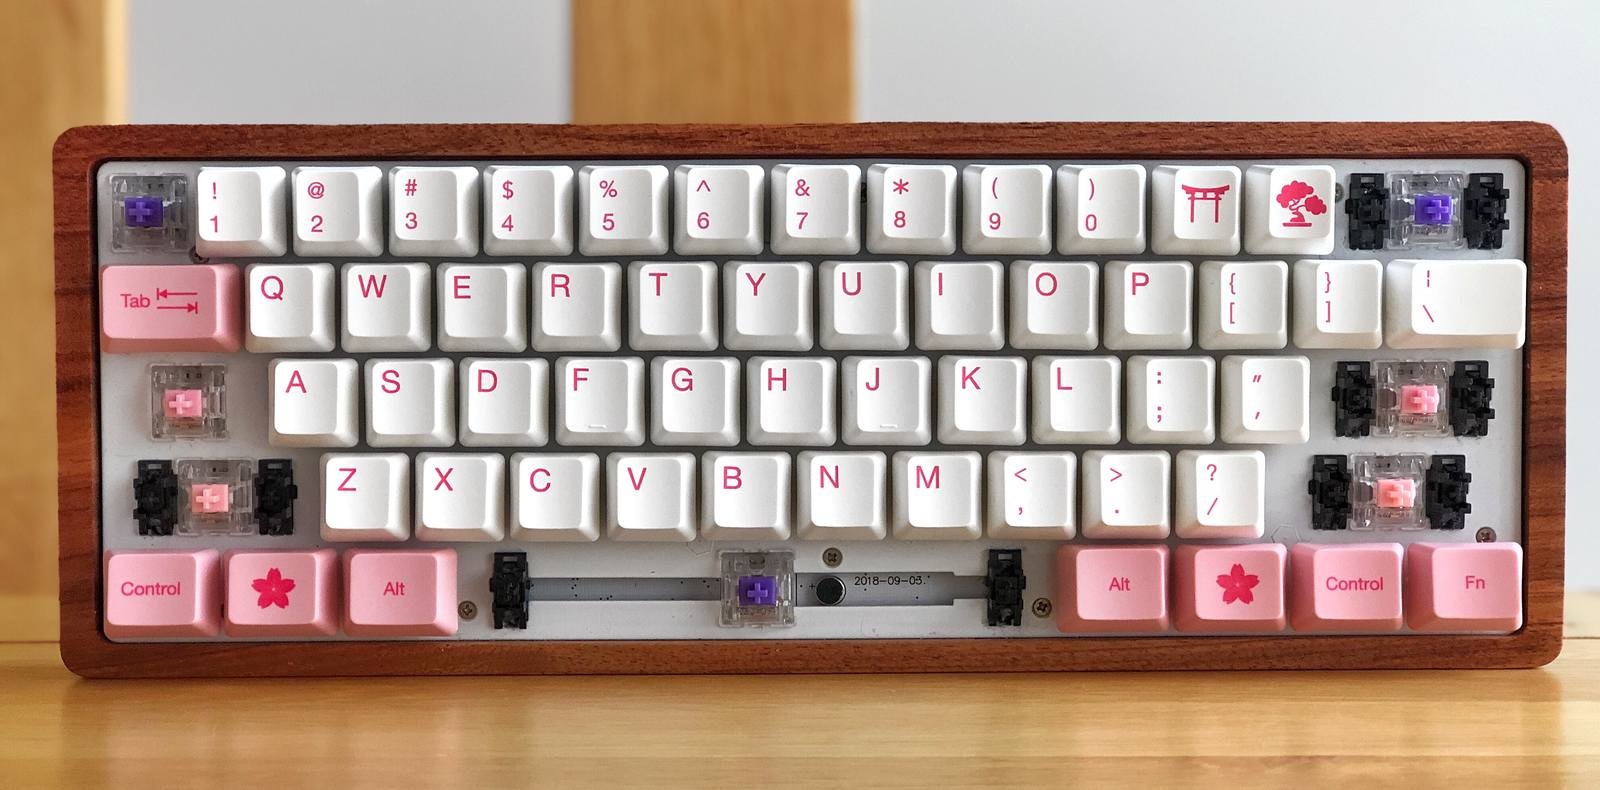 190828 - Zeal switches